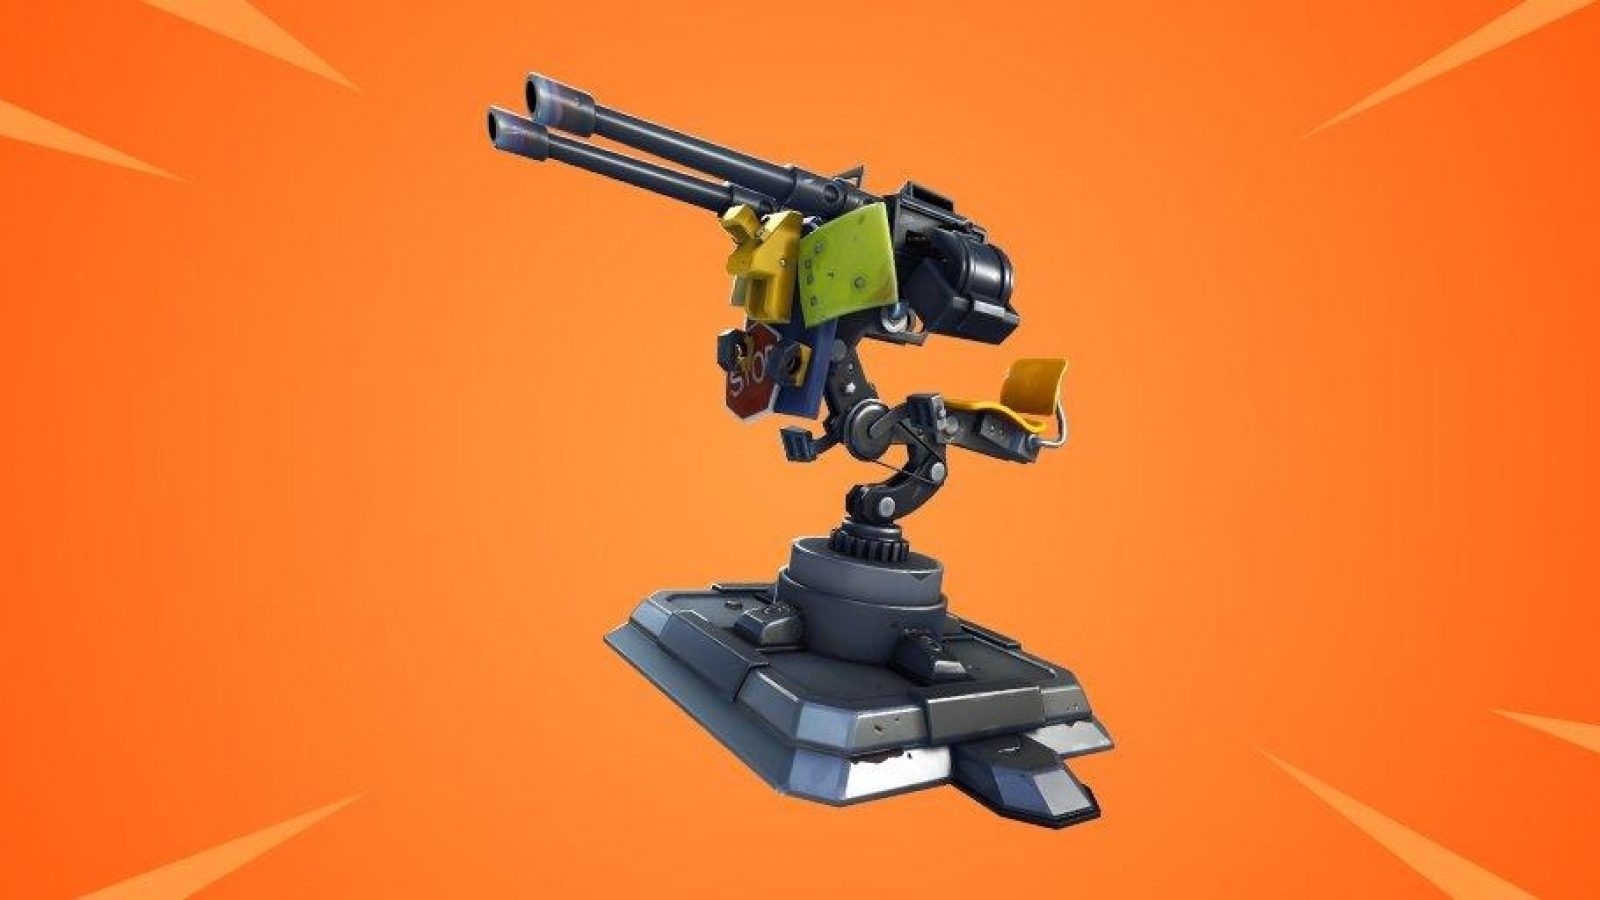 tourelle deployable de poche sortie sur fortnite battle royale